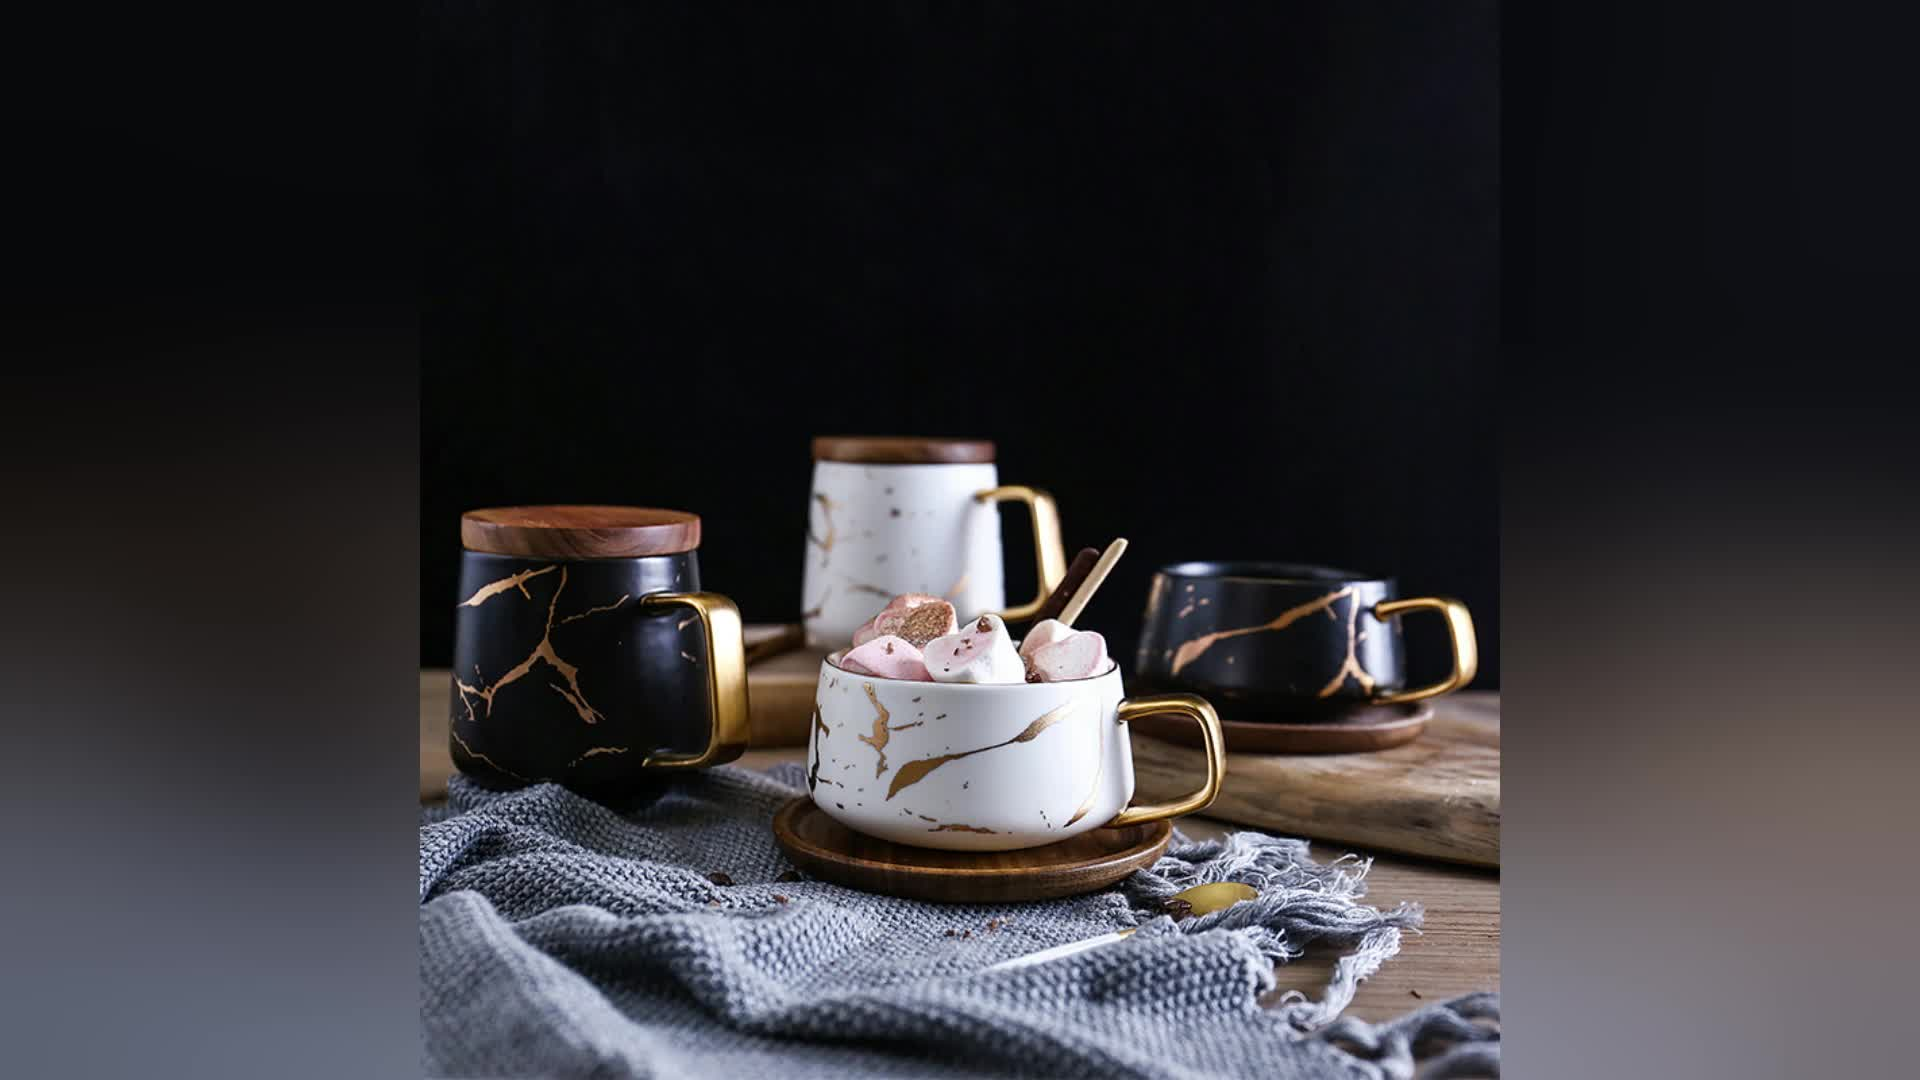 Hot Sell Black And White Porcelain Coffee Cup  Mug With Golden Marble Design And Wood Lid Or Wood Coaster